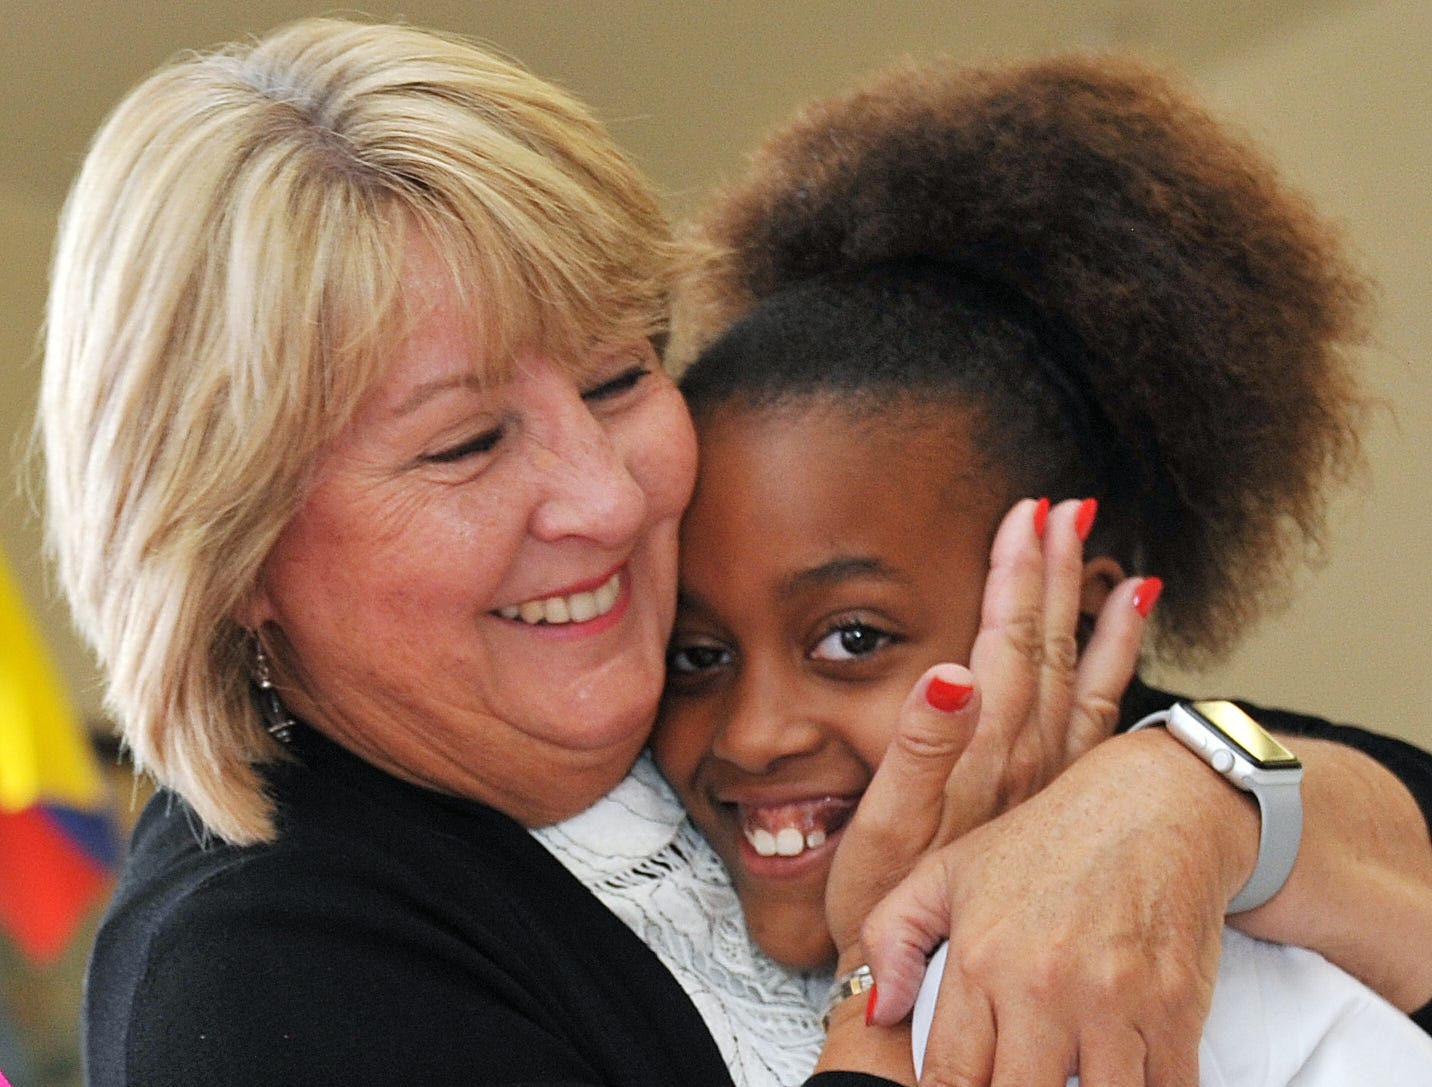 Girls with Purpose Club member Amari Montgomery, gets a hug from Mississippi First Lady Deborah Bryant  during the Girls with Purpose Club Mother-Daughter Tea at Highland Elementary School in Ridgeland.